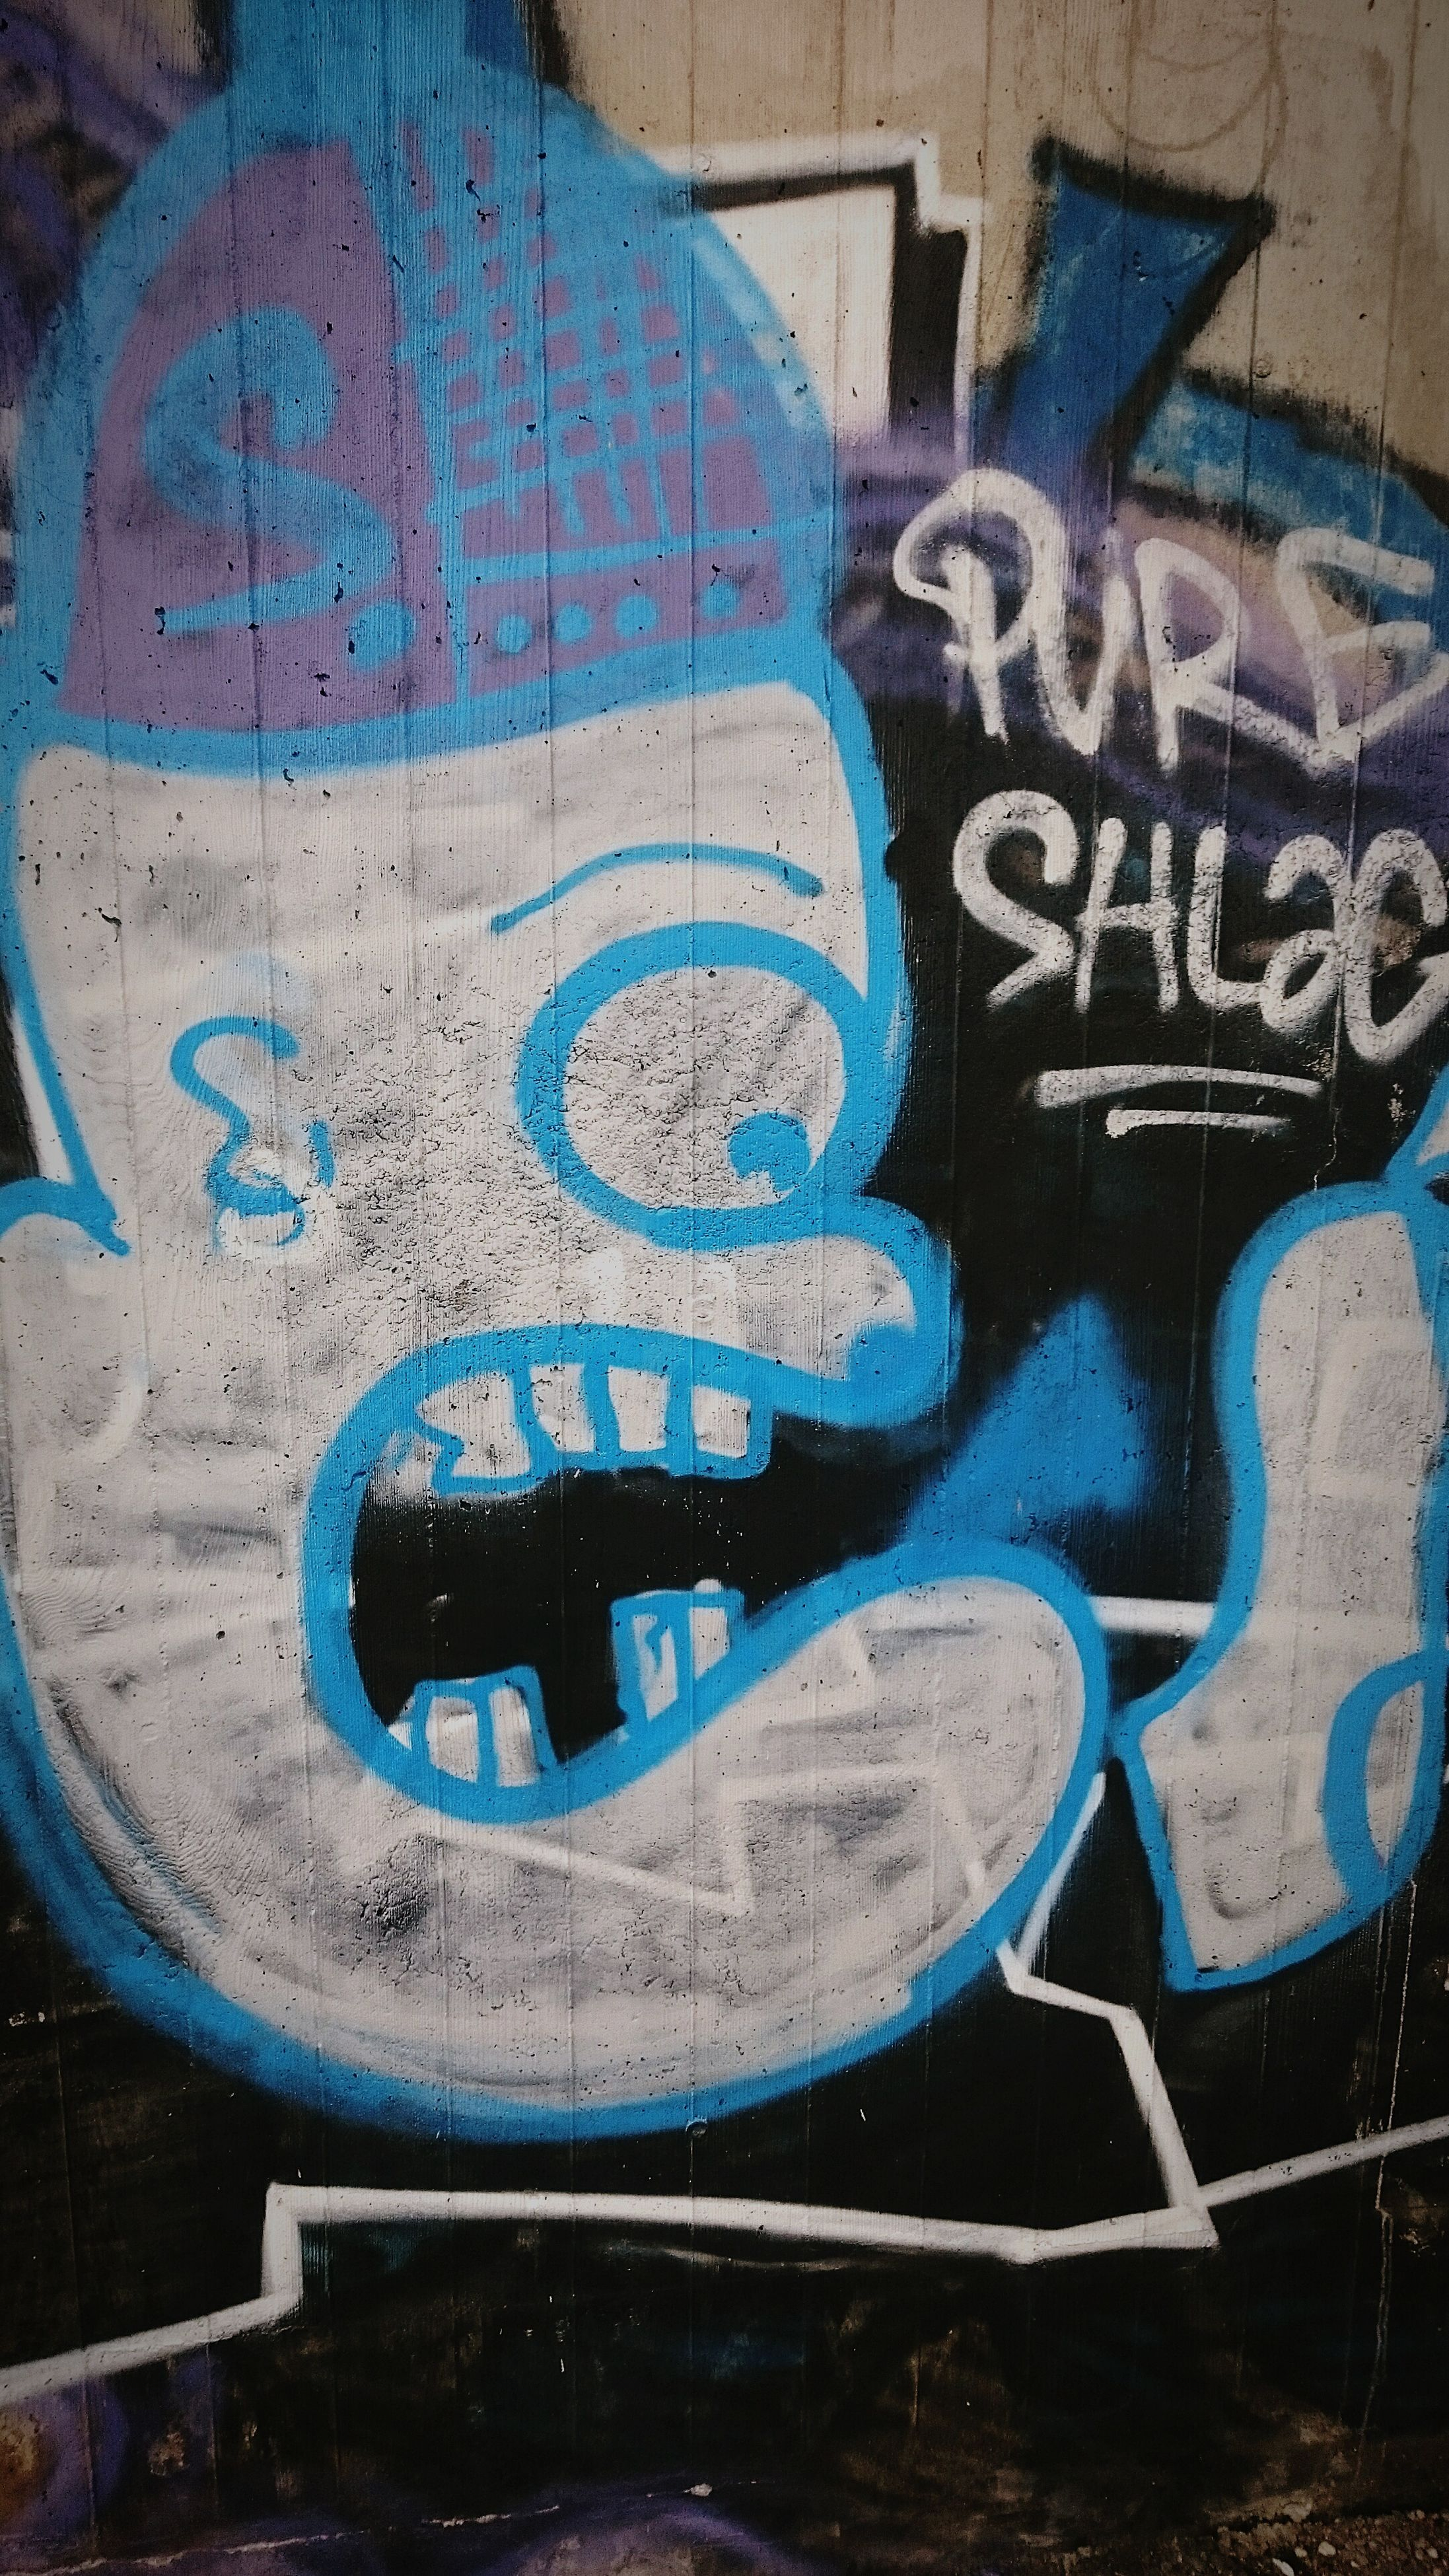 graffiti, art and craft, art, creativity, abandoned, wall - building feature, damaged, obsolete, old, messy, deterioration, run-down, indoors, weathered, close-up, built structure, blue, no people, bad condition, wall